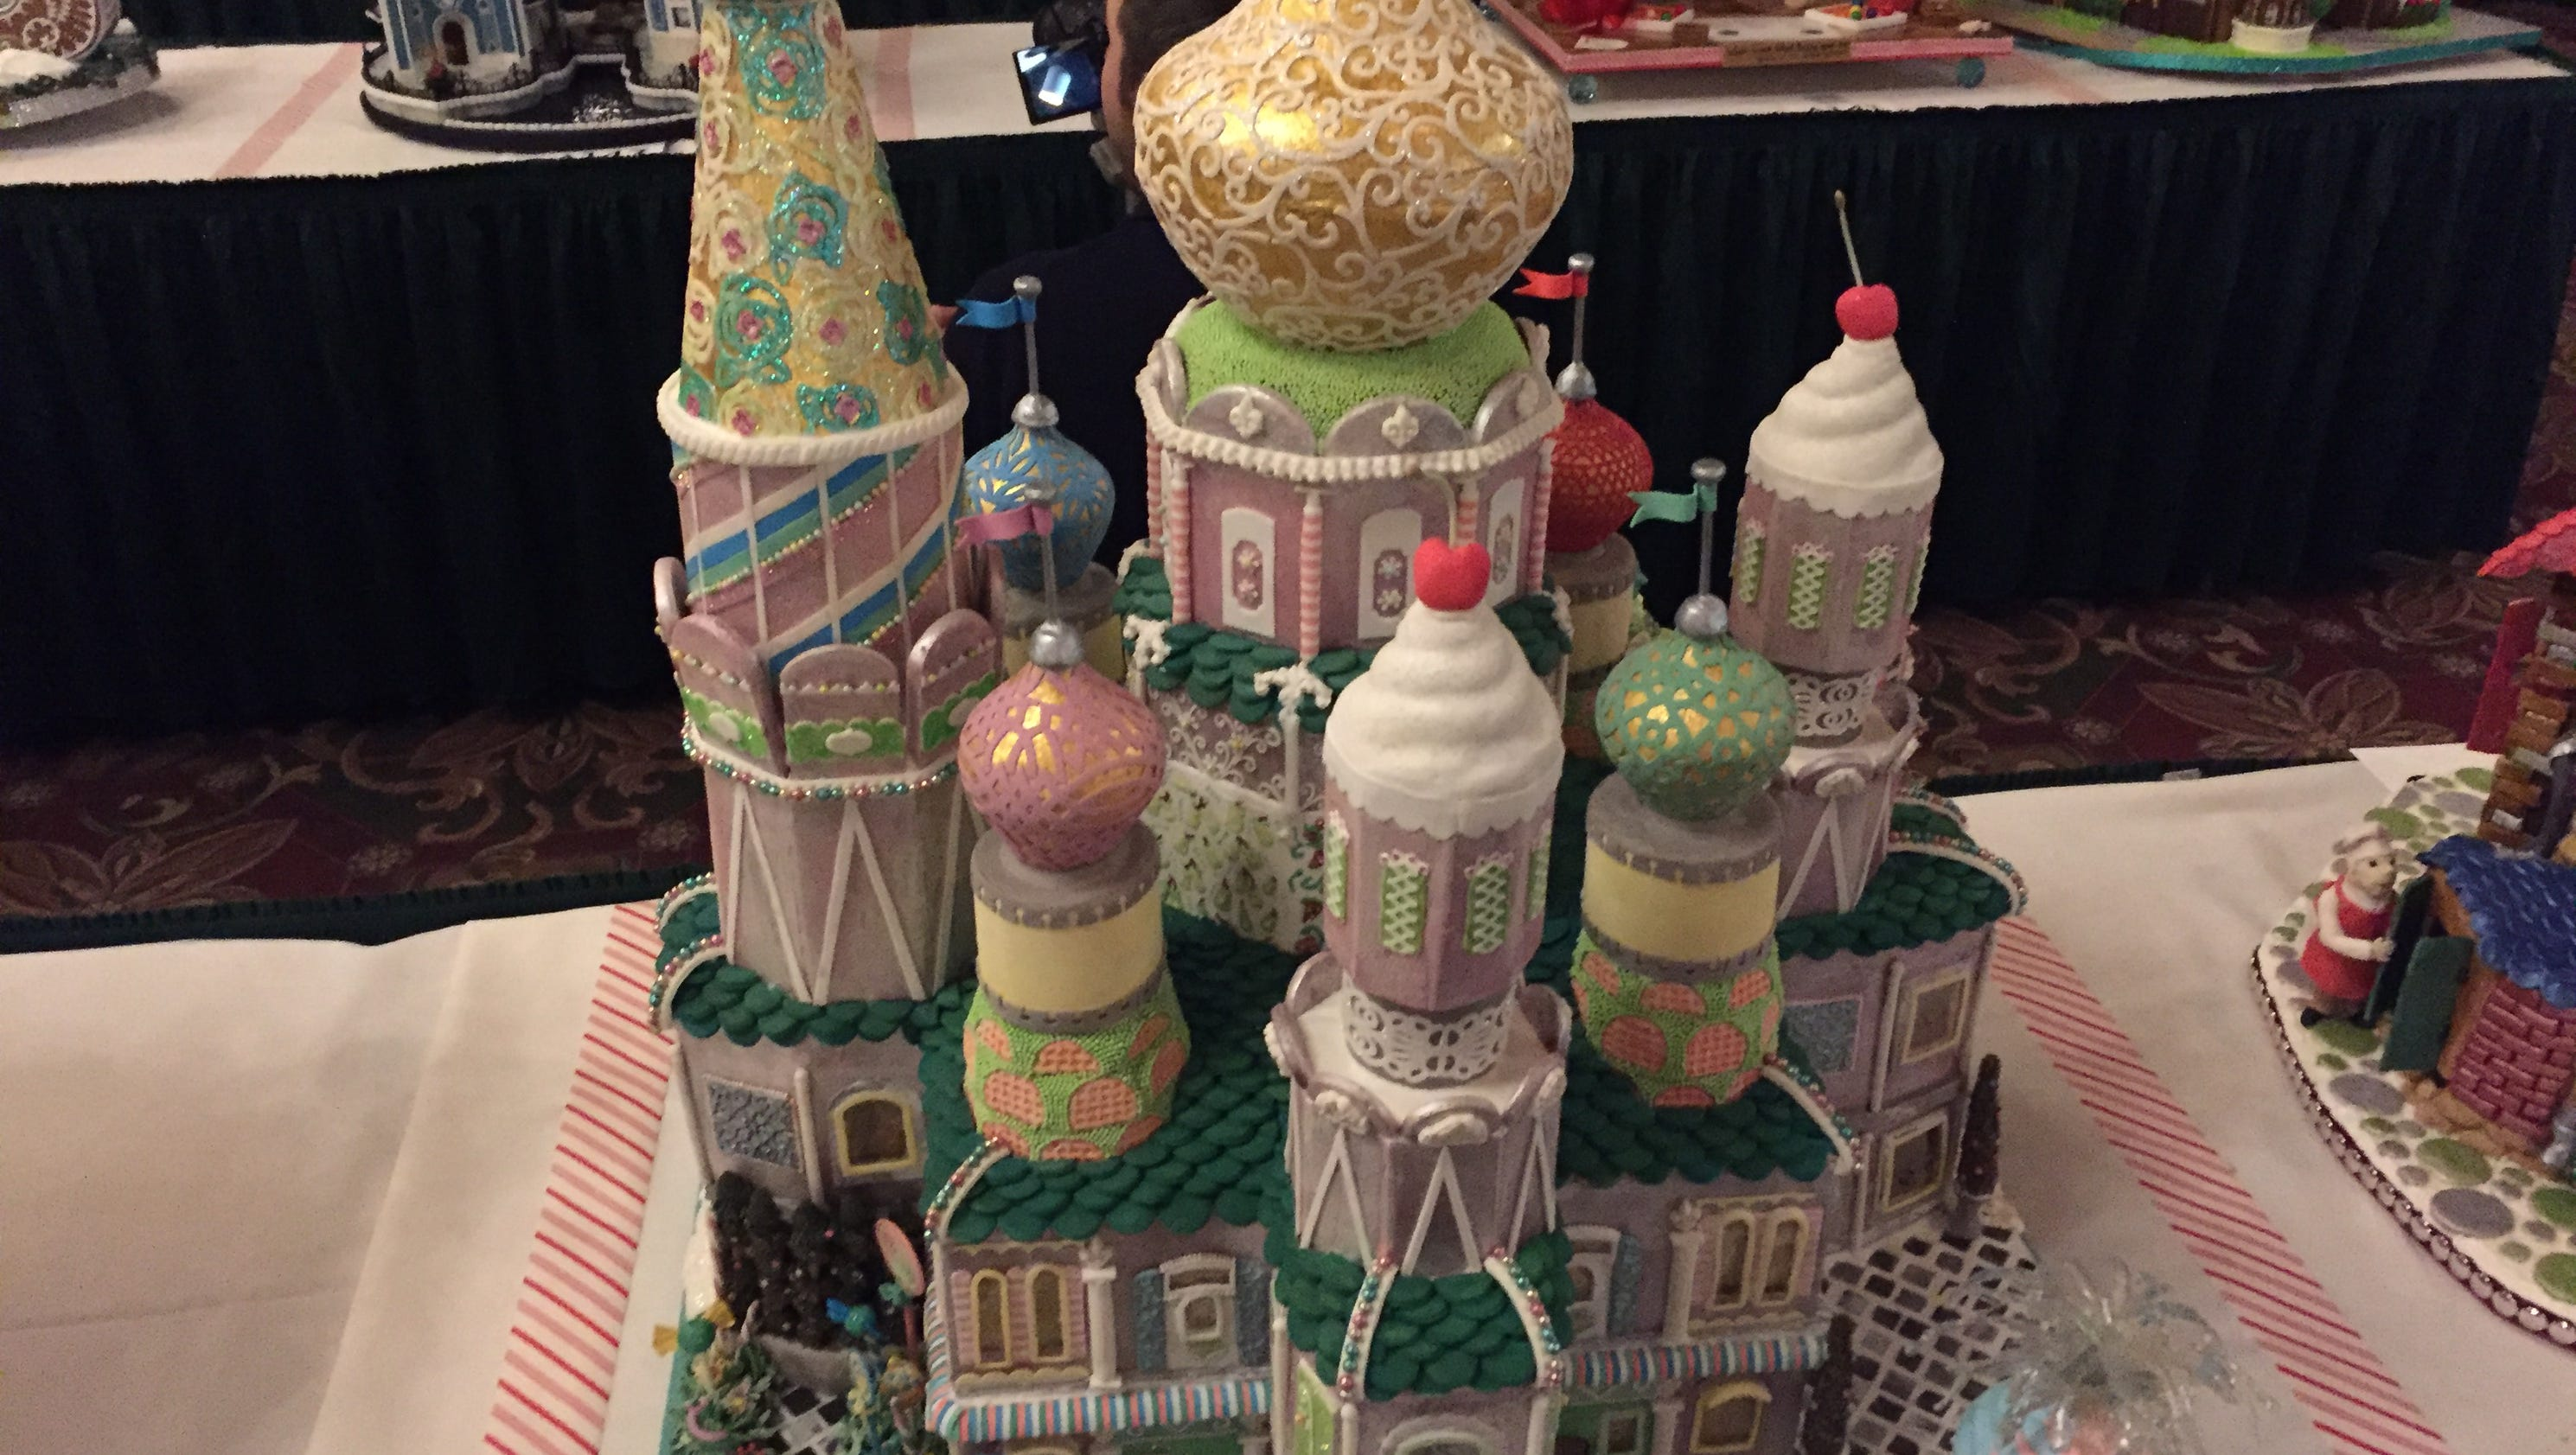 2017 National Gingerbread House winners will blow your mind